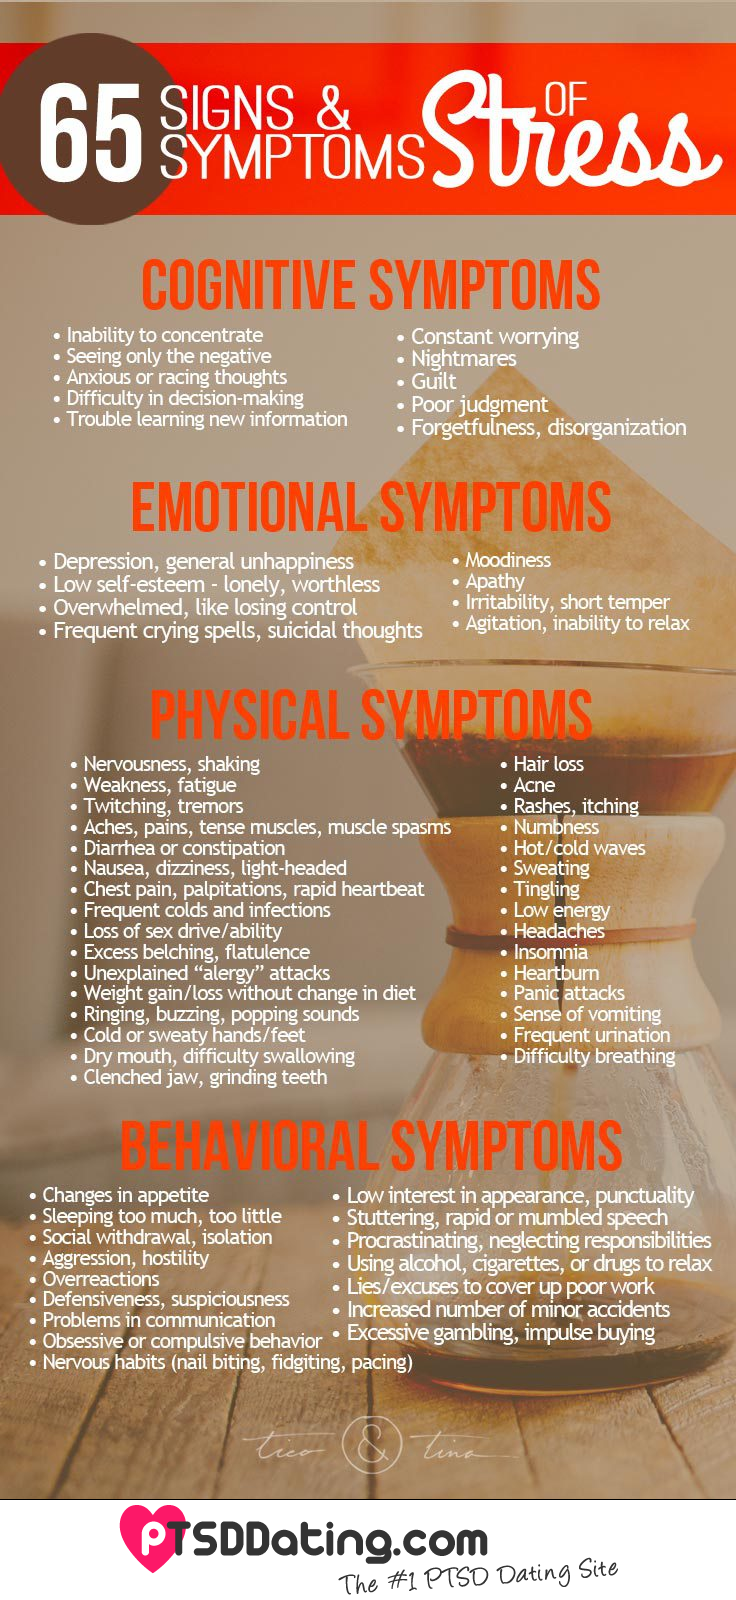 65 Signs & Symptoms Of Stress [PTSD] [Infographic]